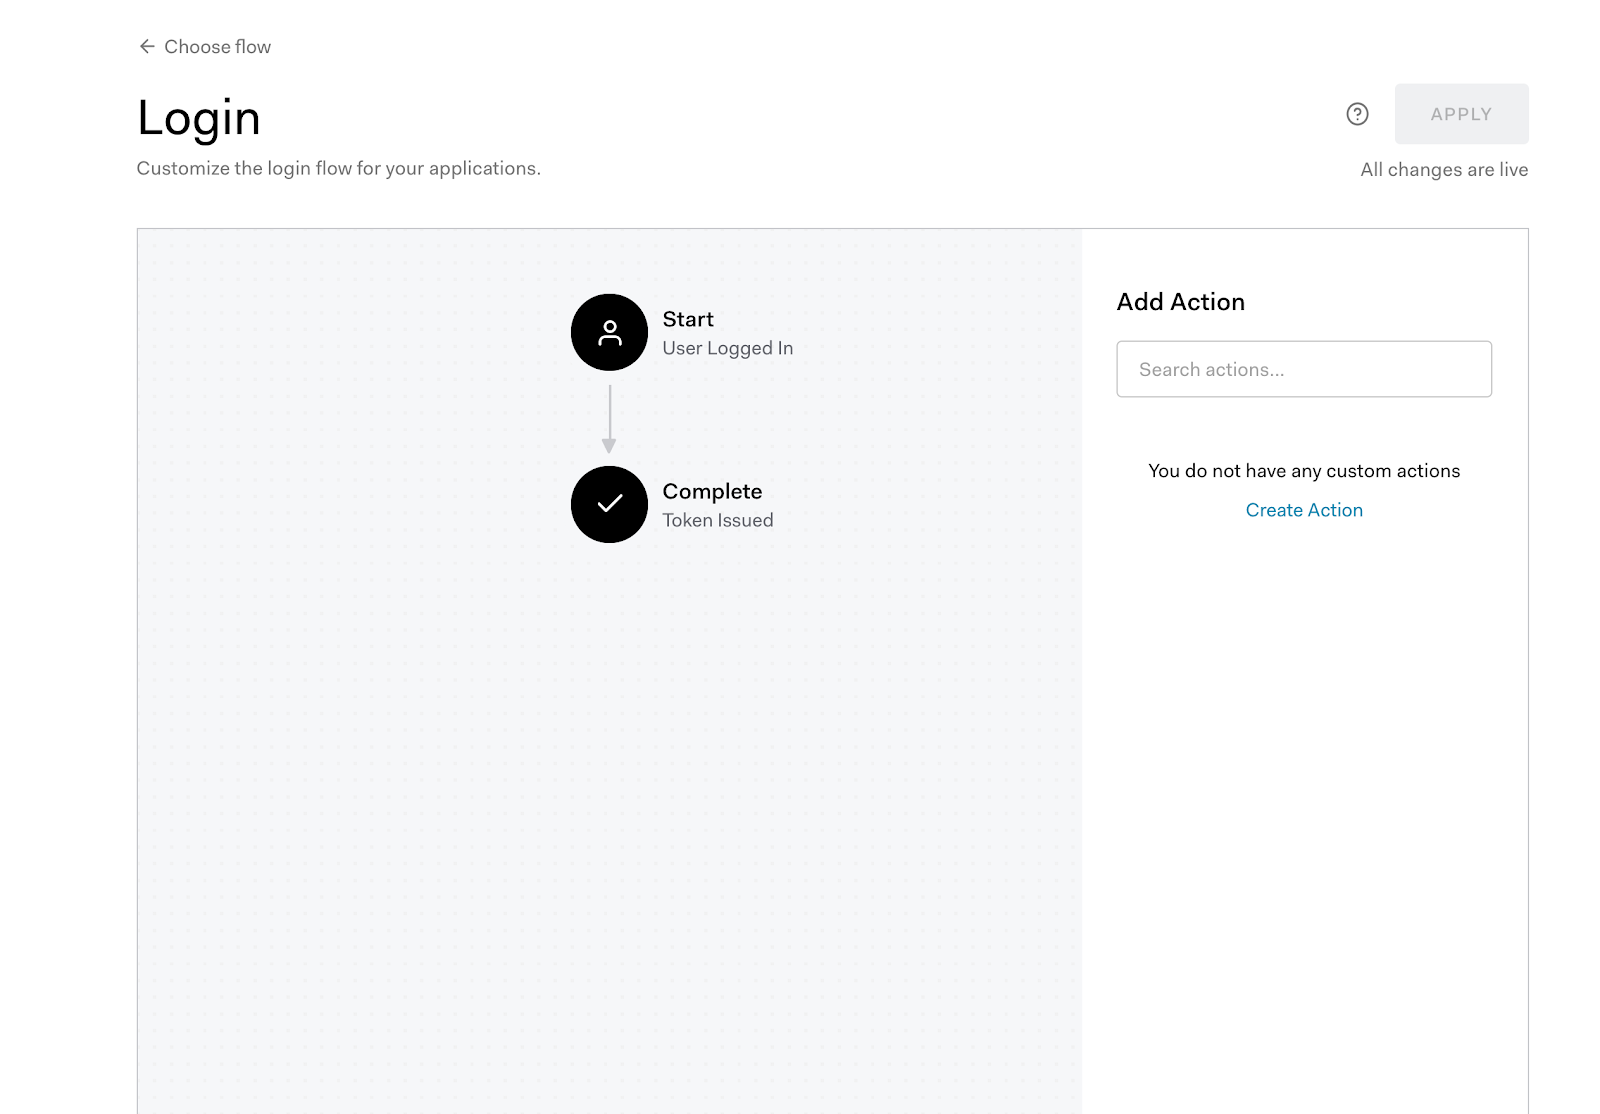 Flow Editor View